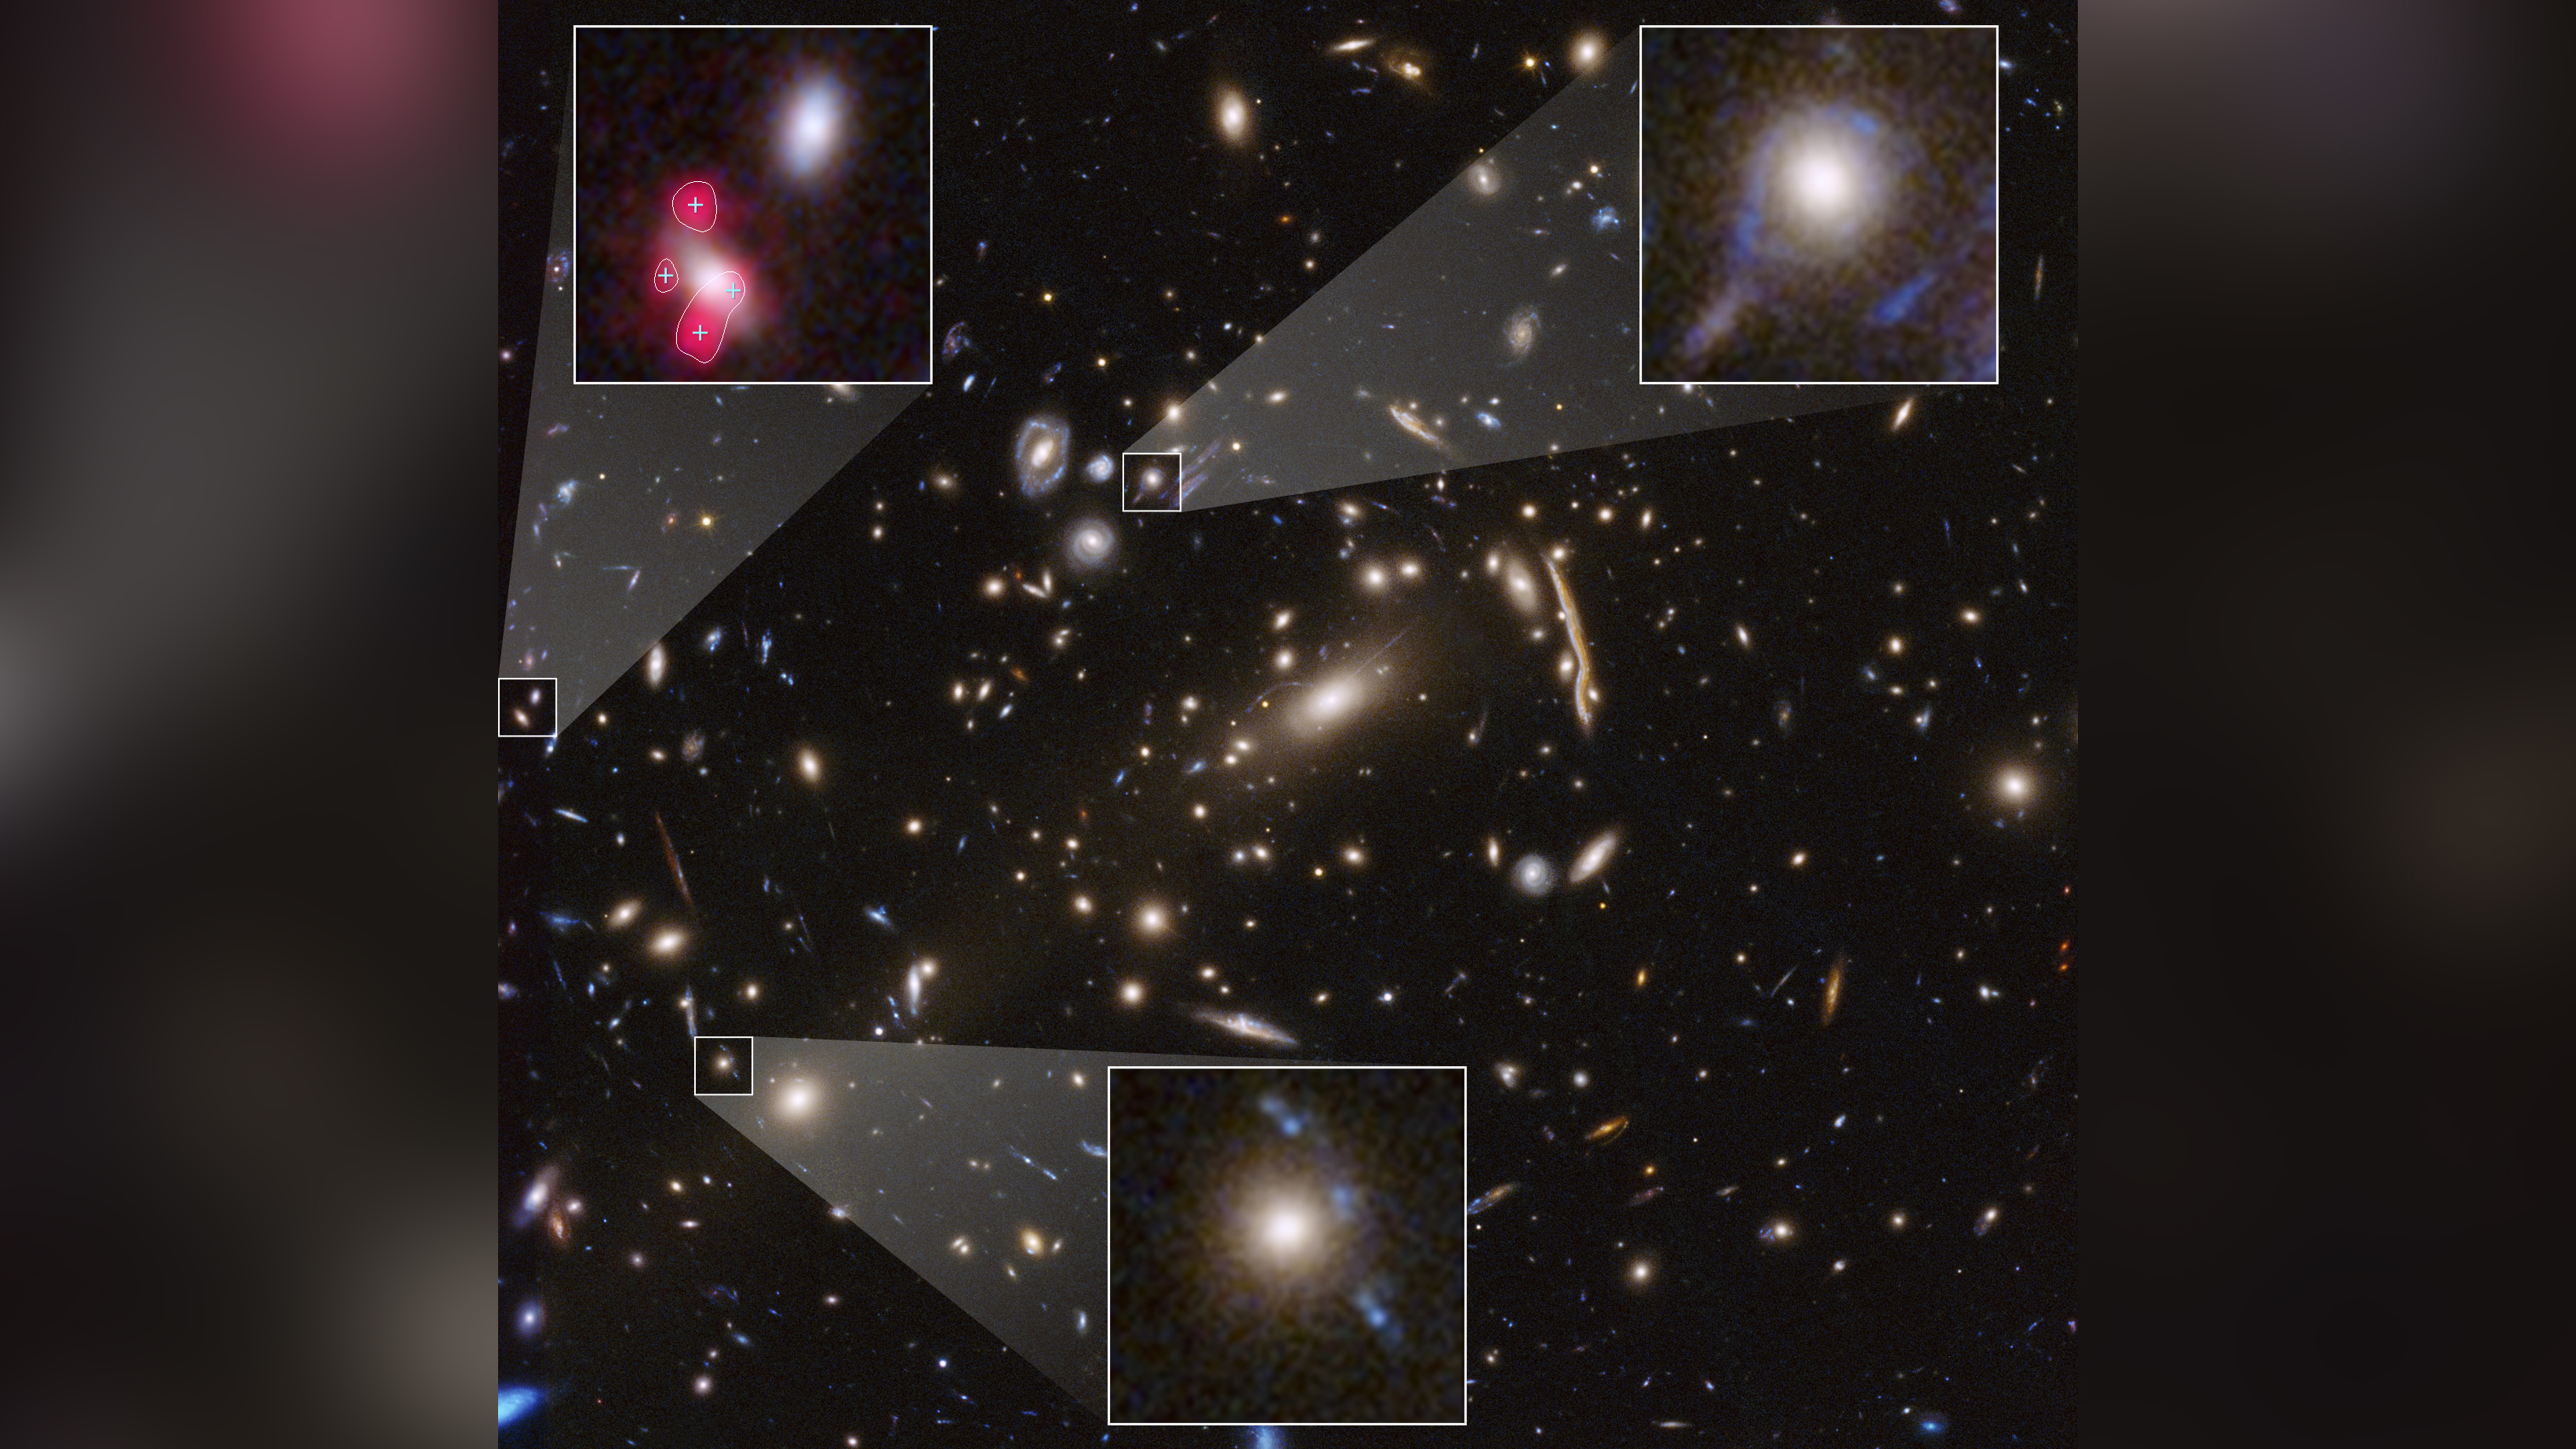 Hubble images reveal new aspect of mysterious dark matter in the universe